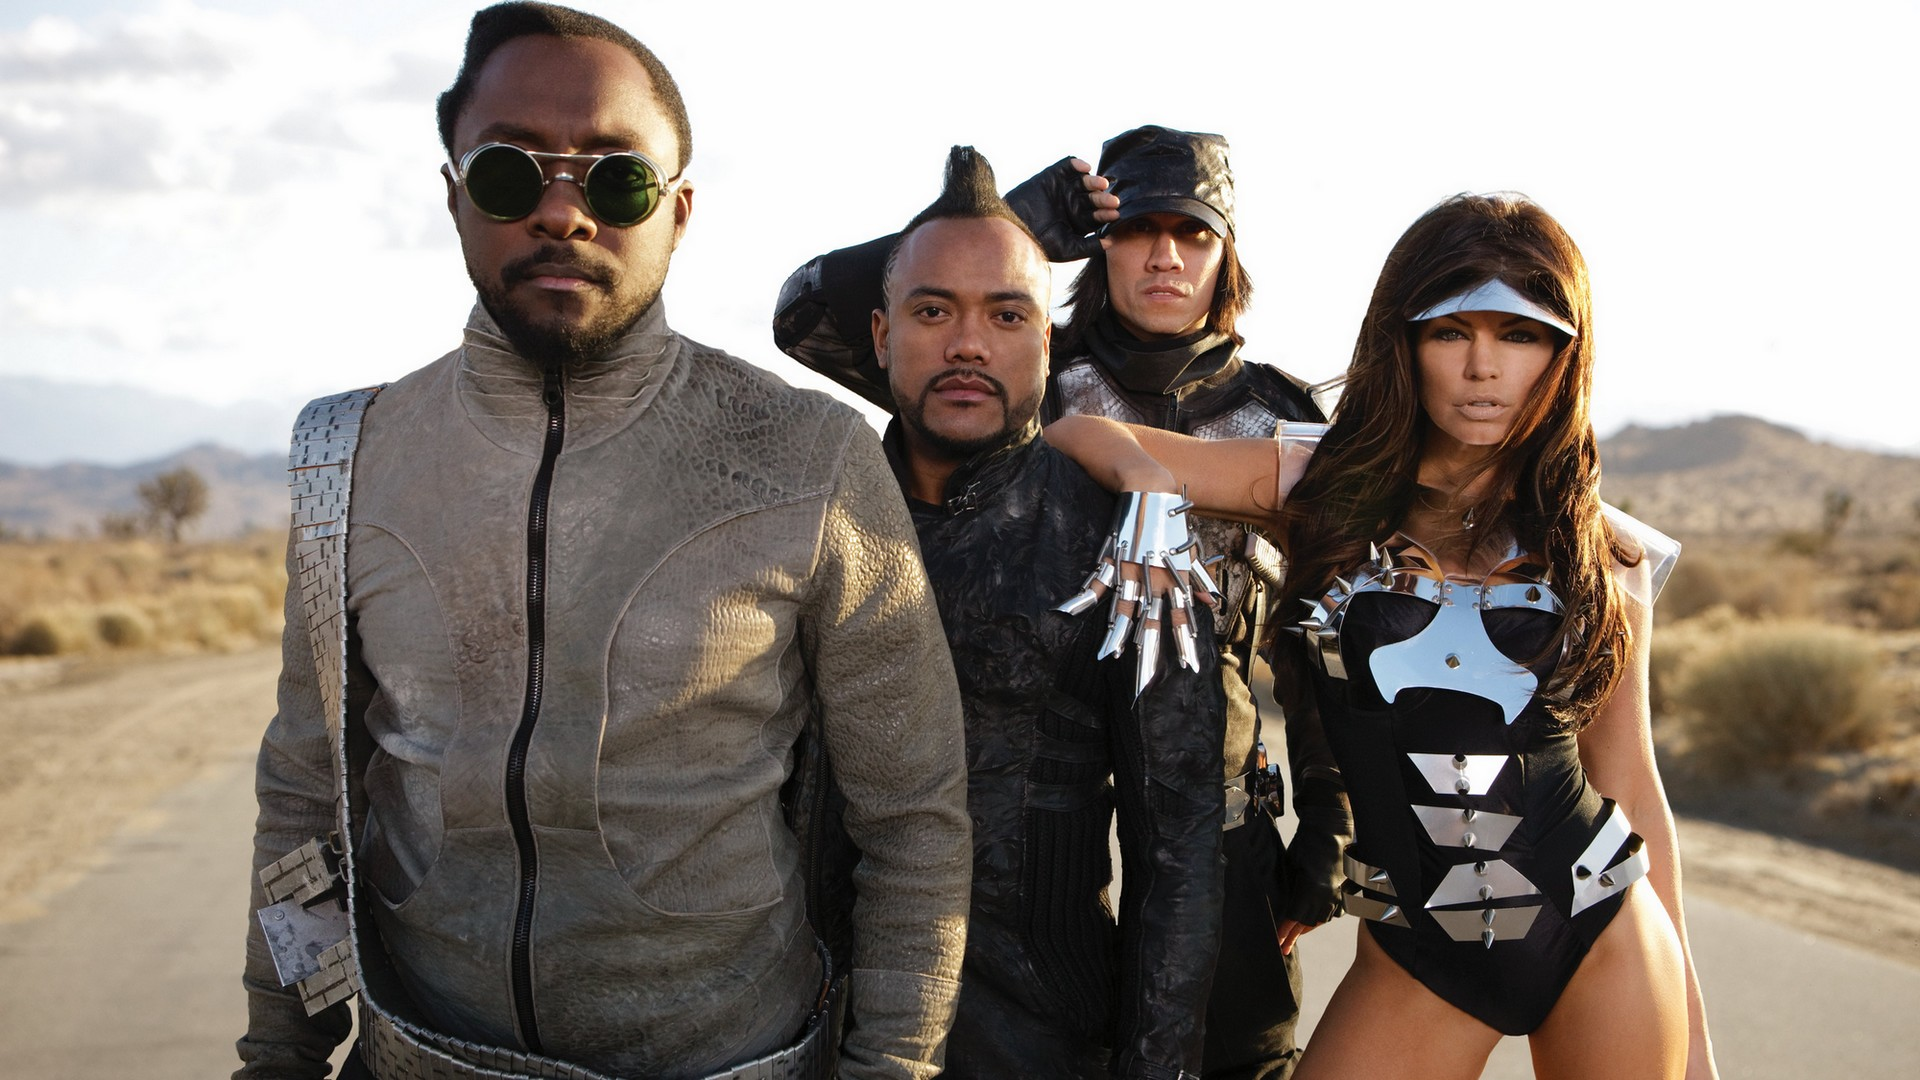 High Resolution Wallpaper | The Black Eyed Peas 1920x1080 px